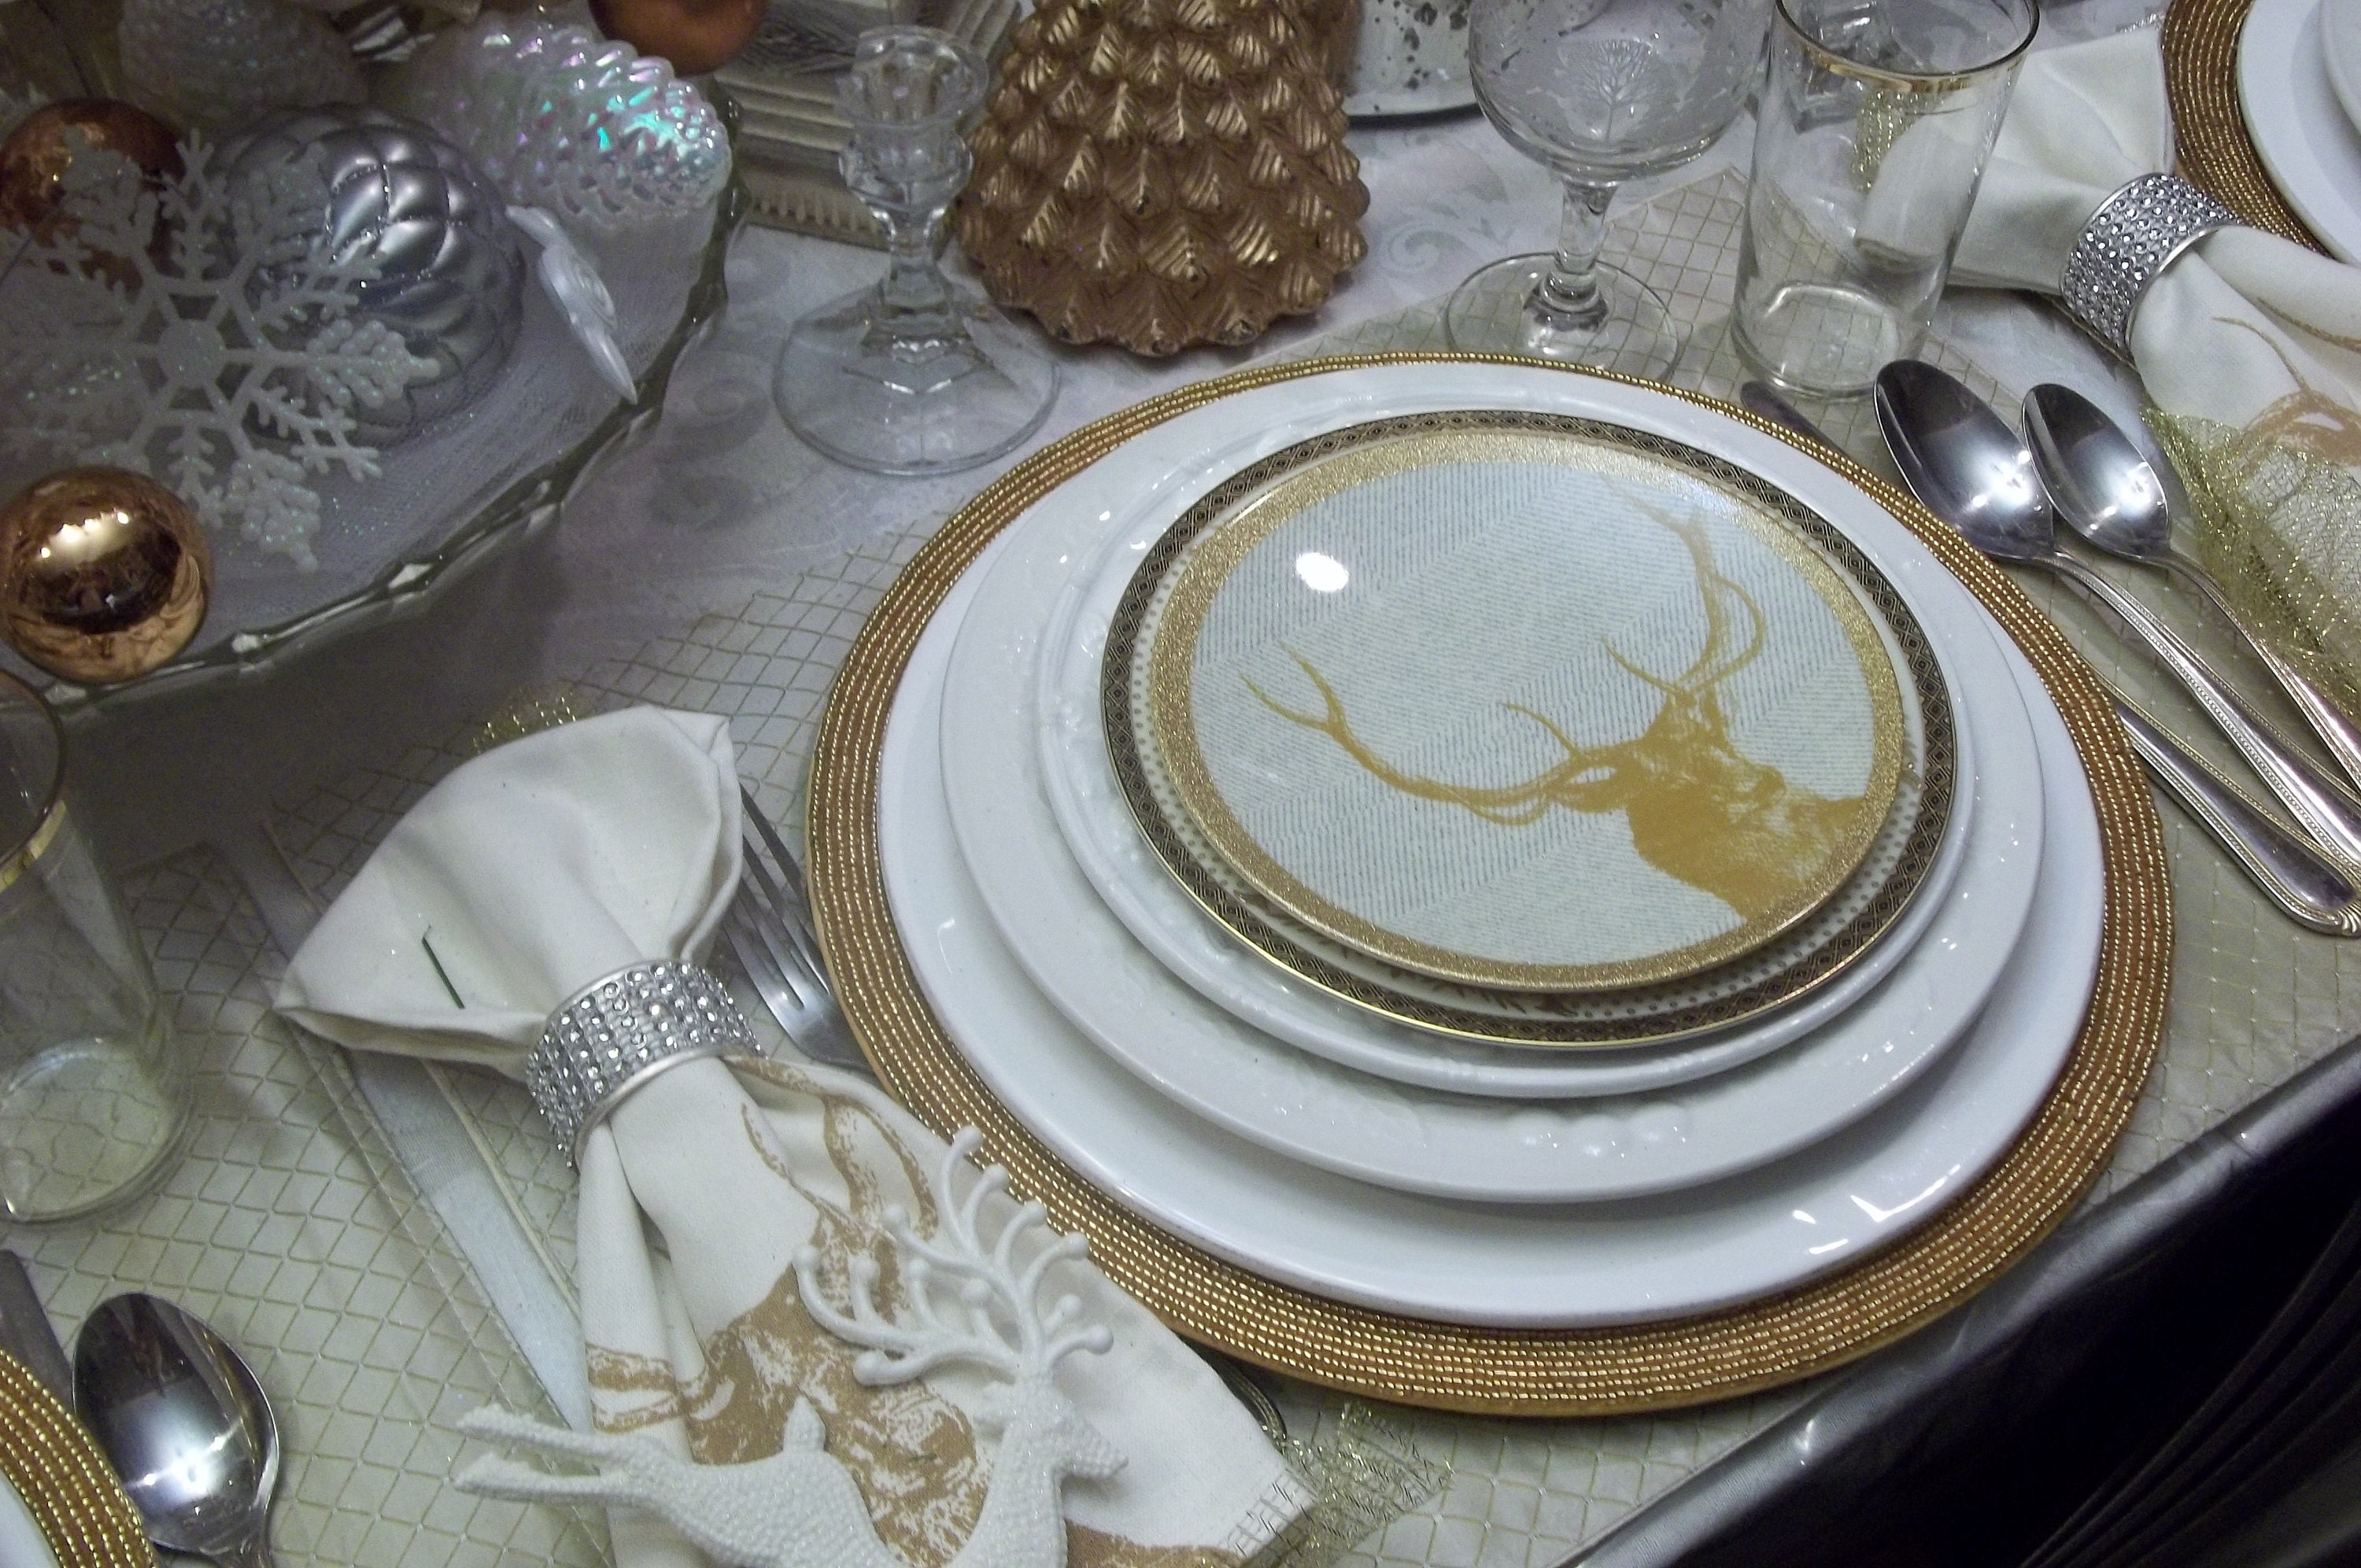 So decorating the table is for a smaller group and things are more elegant with that thought in mind. As opposed to sturdy Christmas paper plates for dinner ... & Merry Christmas Gold and White Tablescape